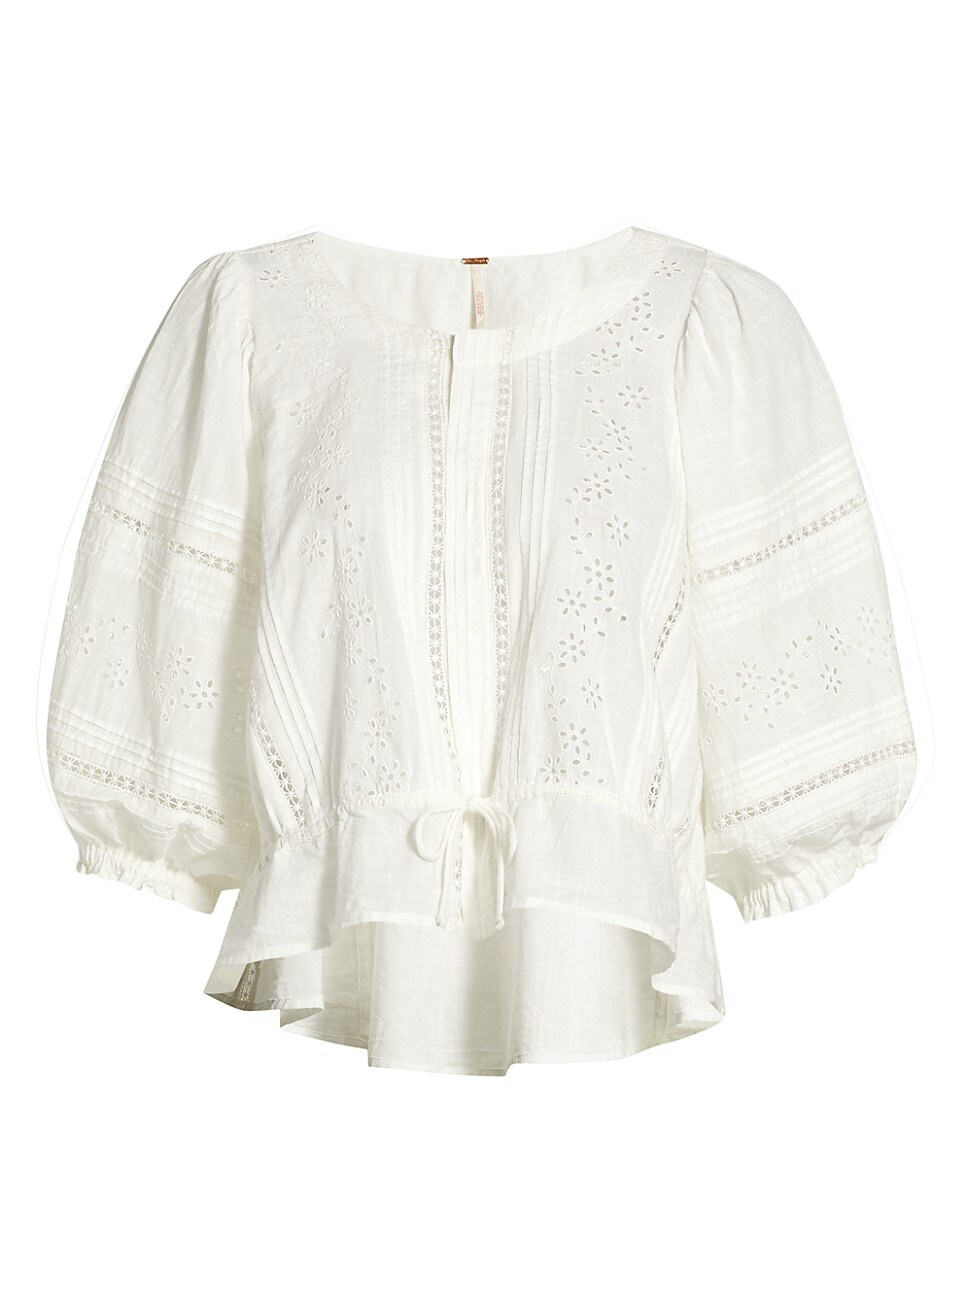 Free People Cottons WOMEN'S DAISY CHAINS EYELET TOP